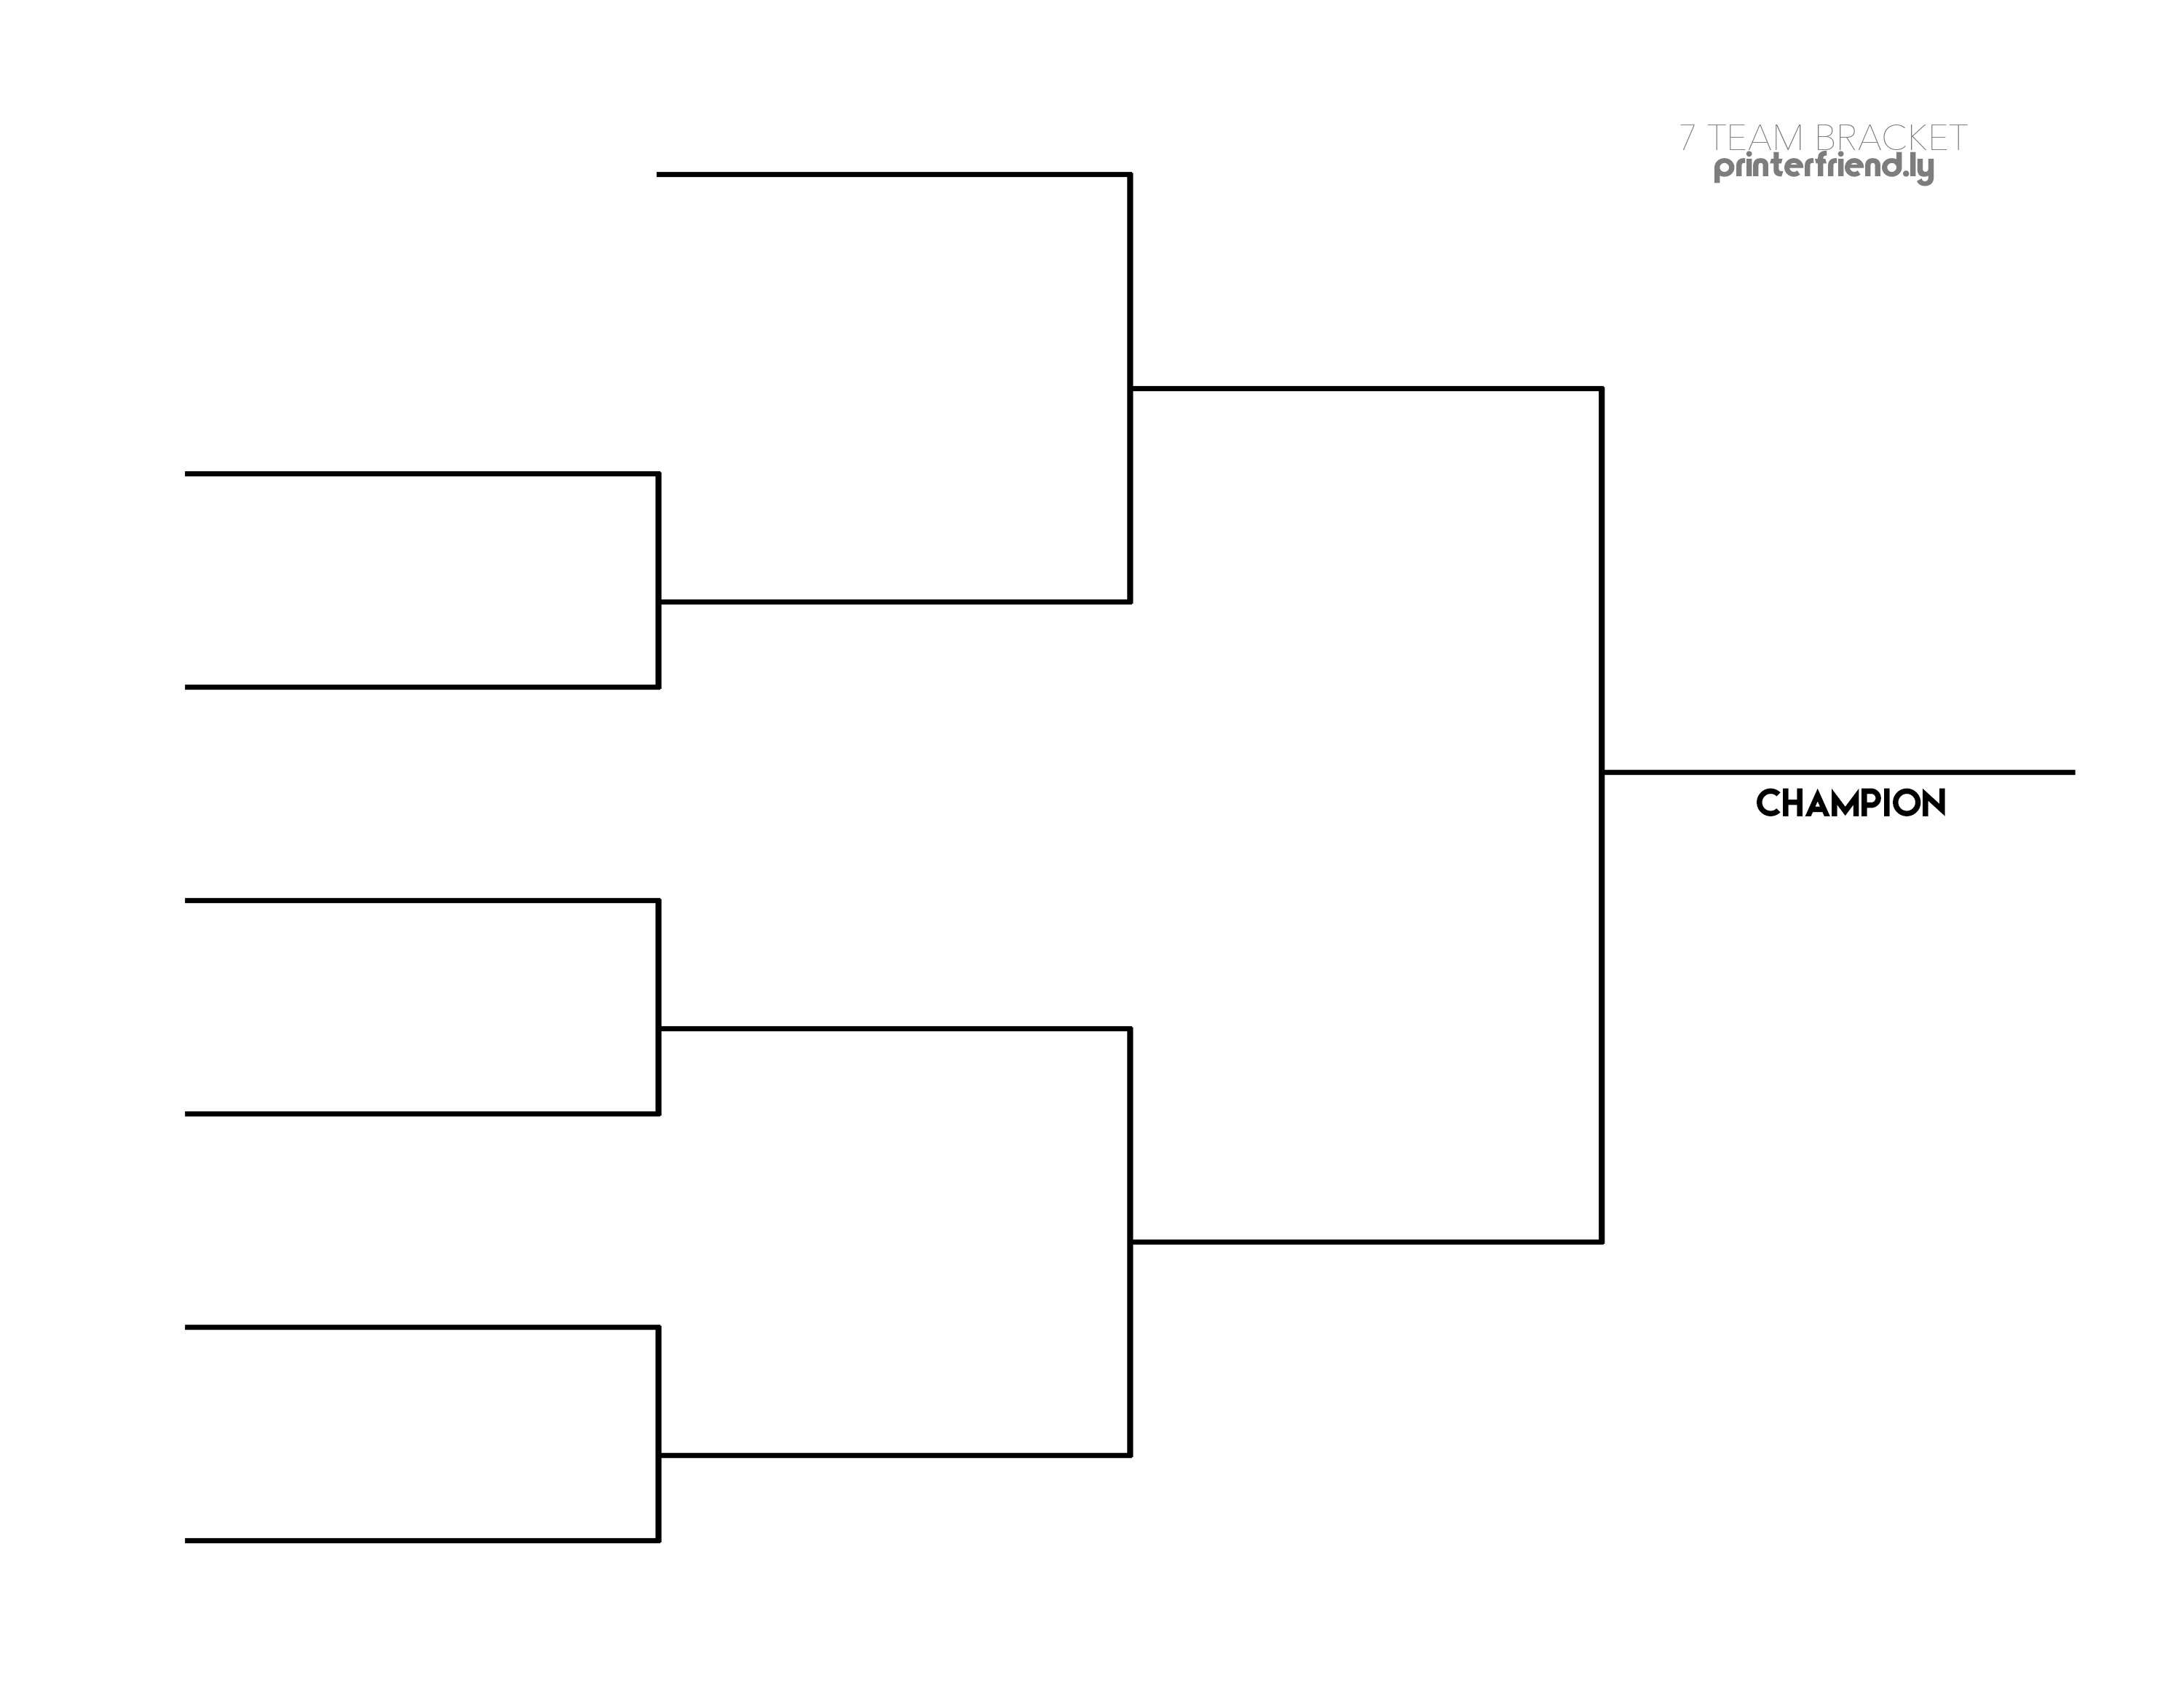 7 Team Single Elimination Bracket